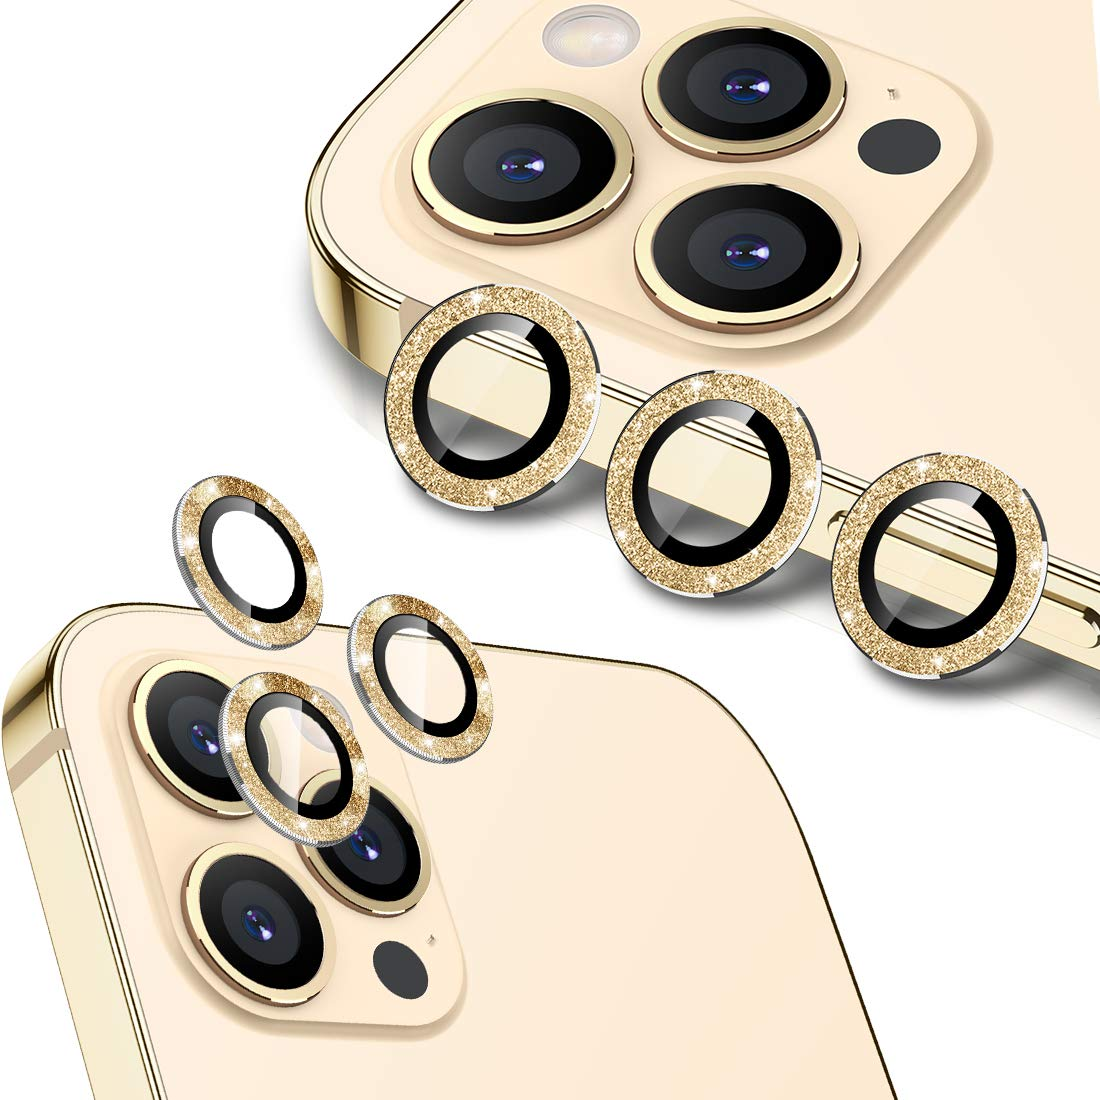 Wsken for iPhone 12 Pro Max (6.7 inch) Camera Lens Protector, Glitter HD Tempered Glass Aluminum Alloy Lens Screen Stiker Cover Film - Sparkling Gold